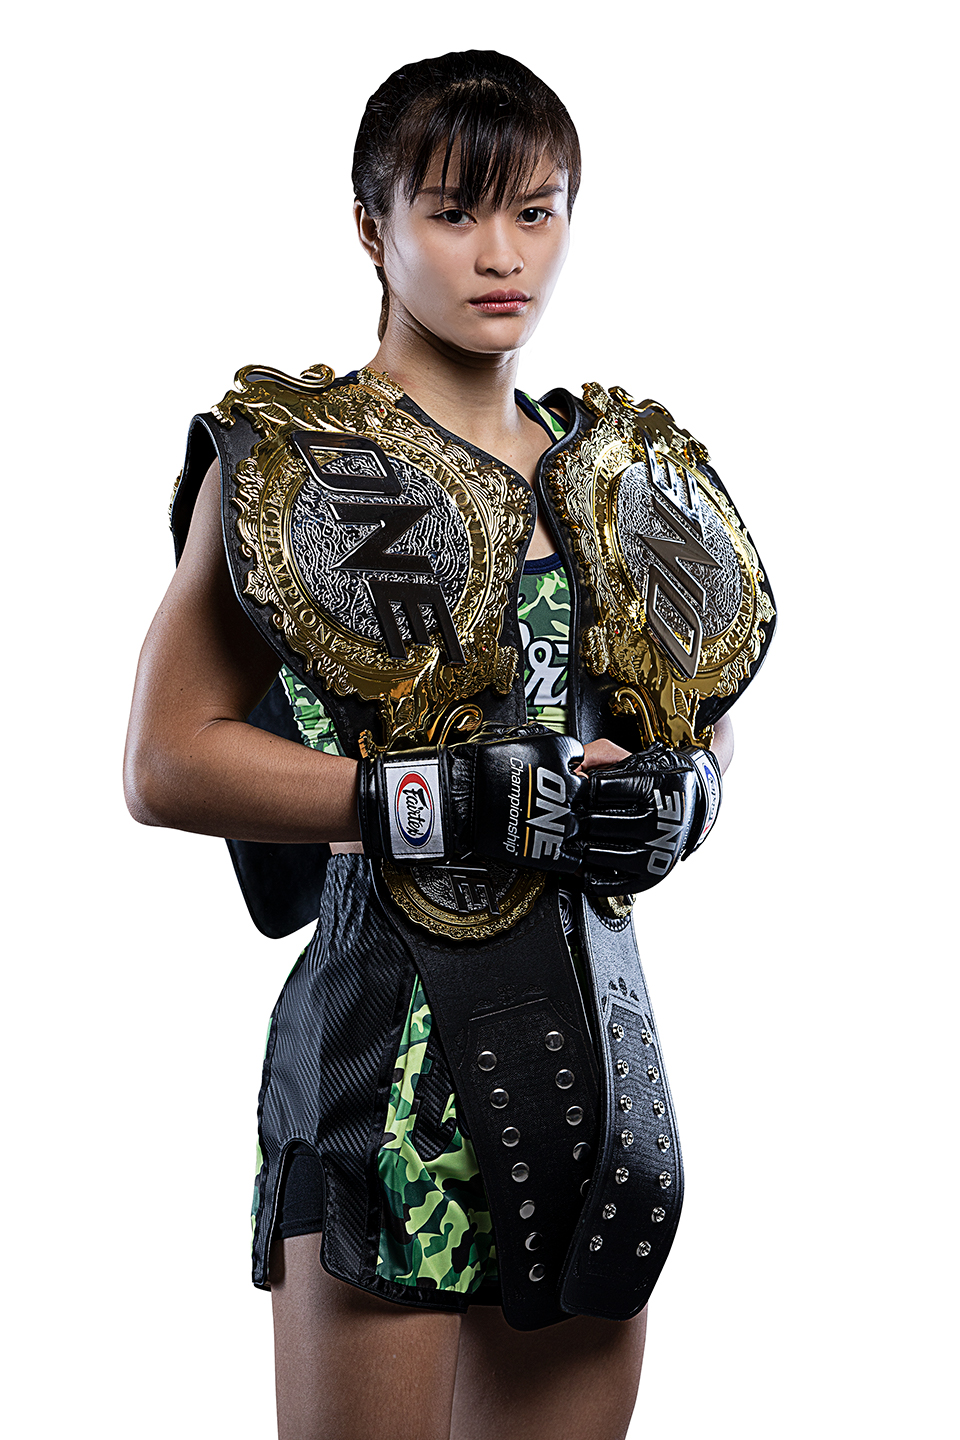 Stamp, a champion. Photo: ONE Championship